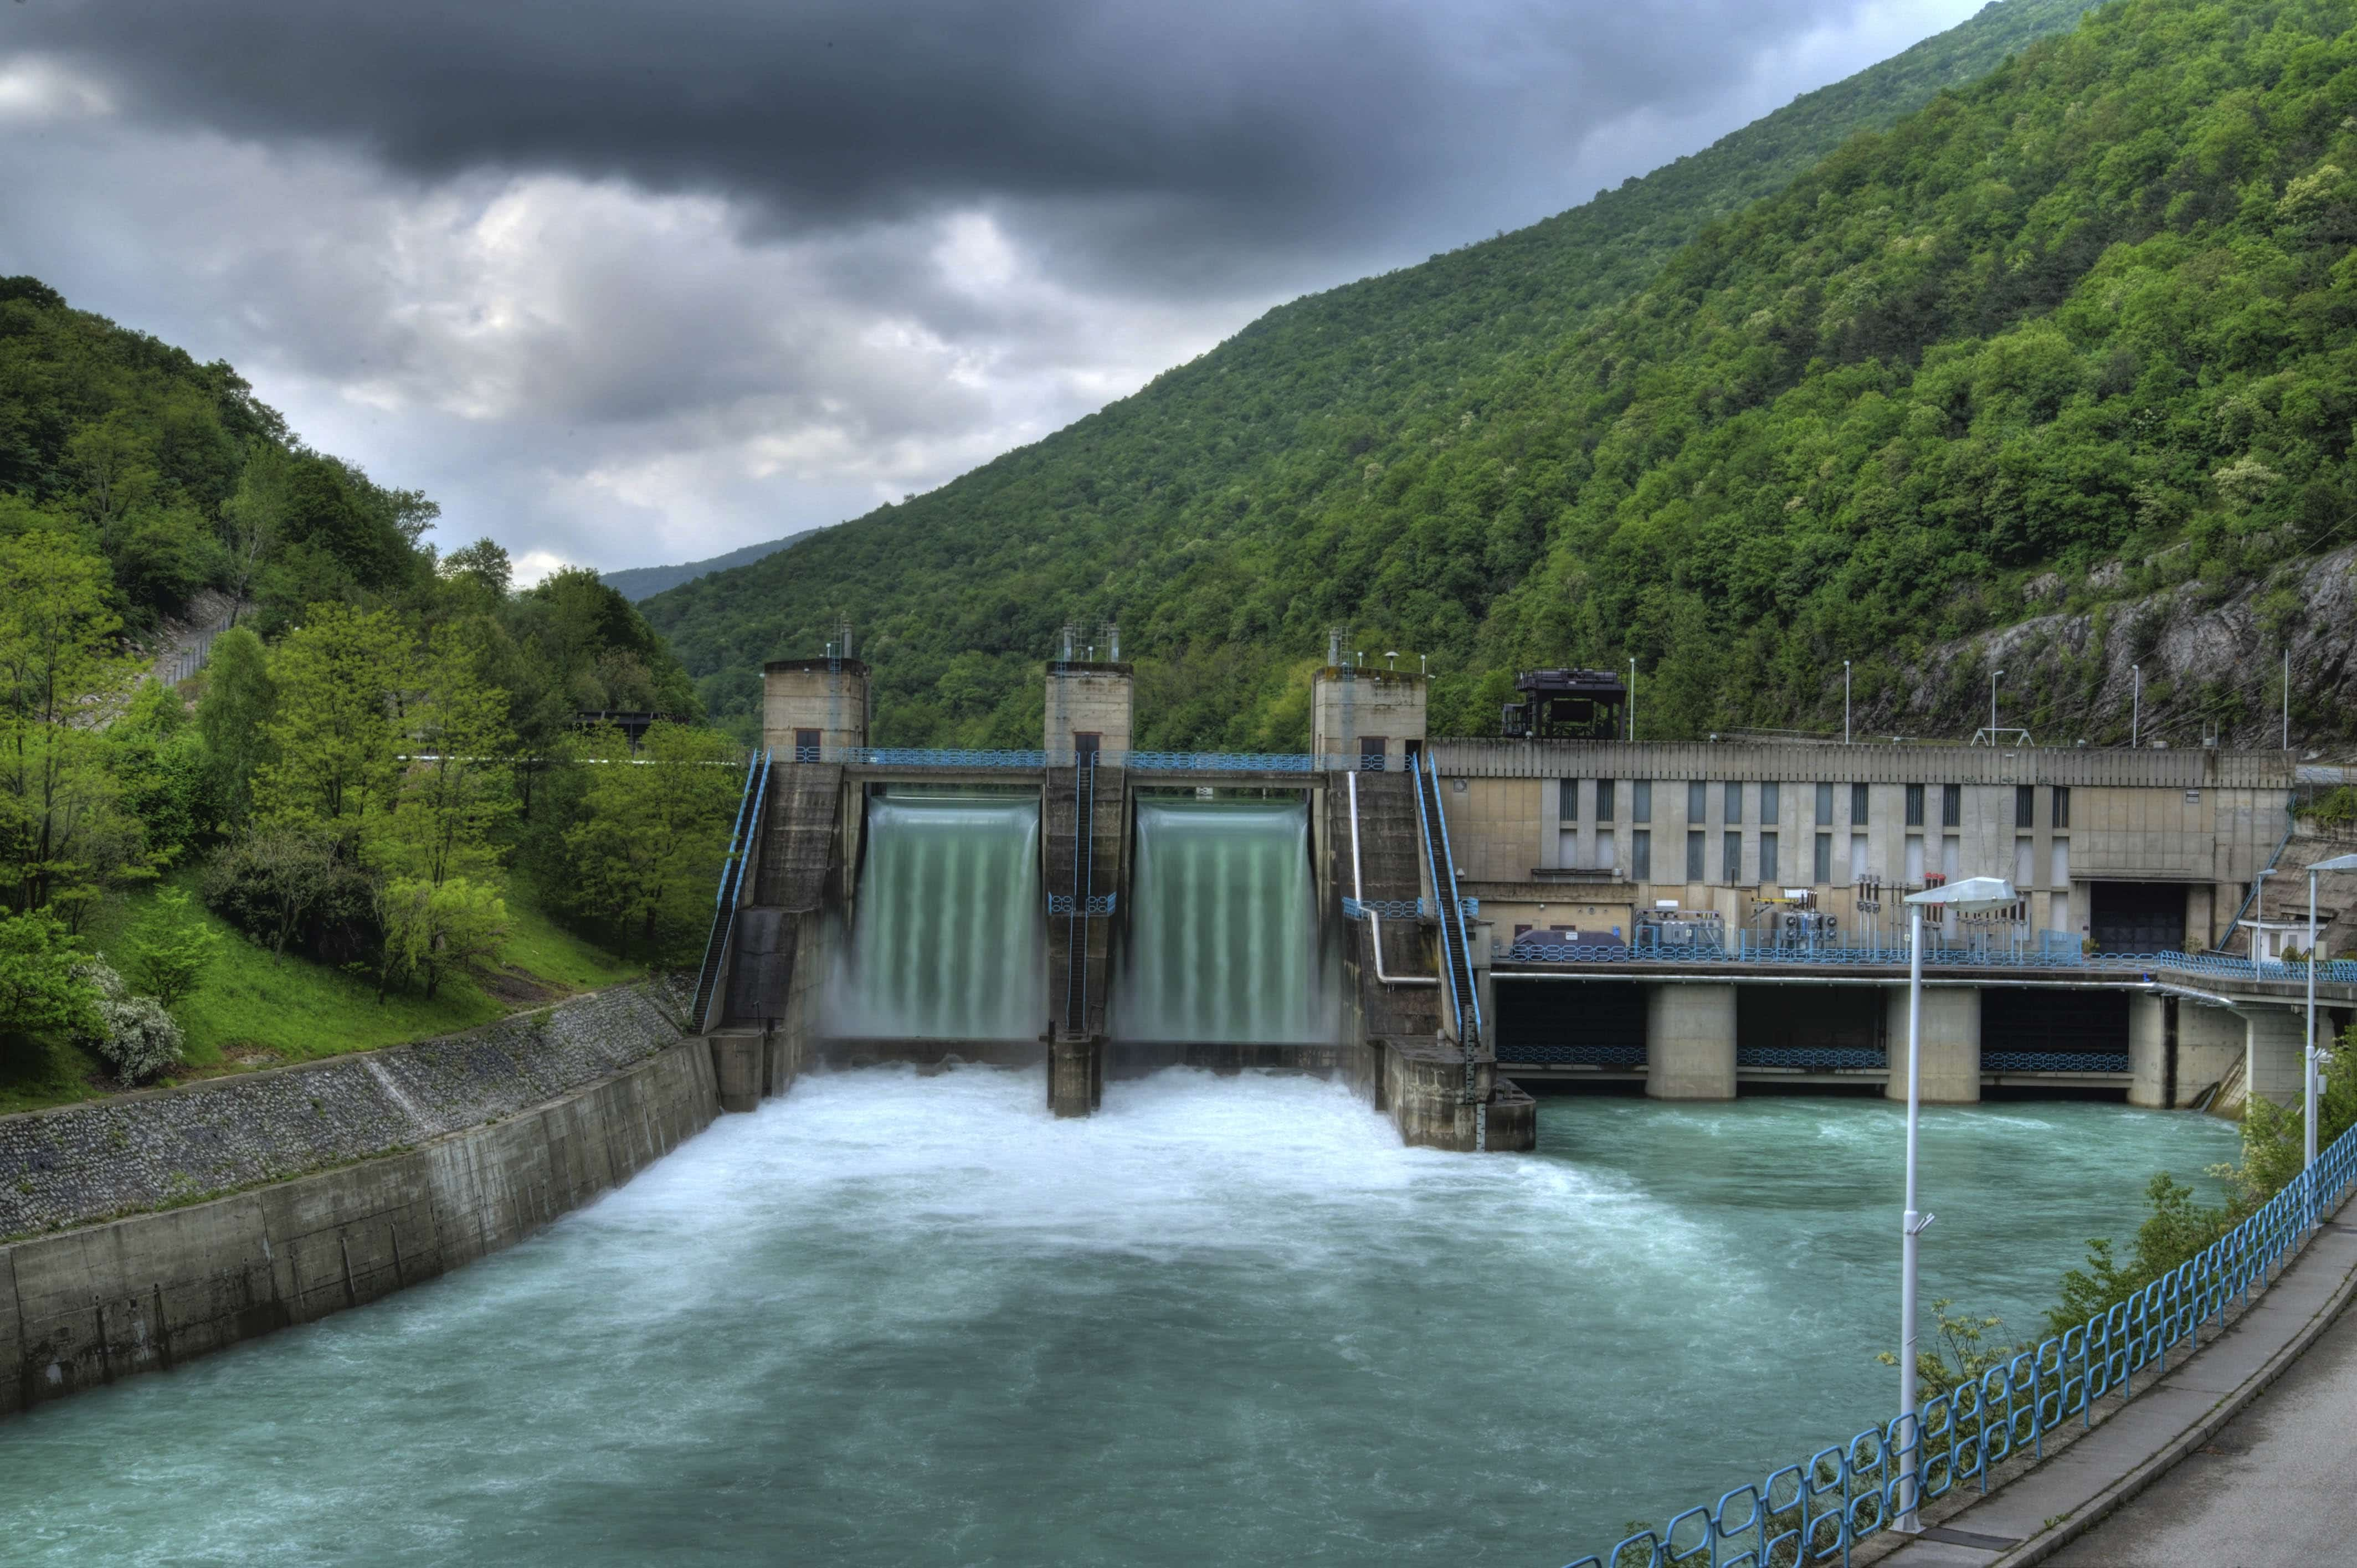 Where Is Hydroelectricity Used? - Clean Energy Ideas